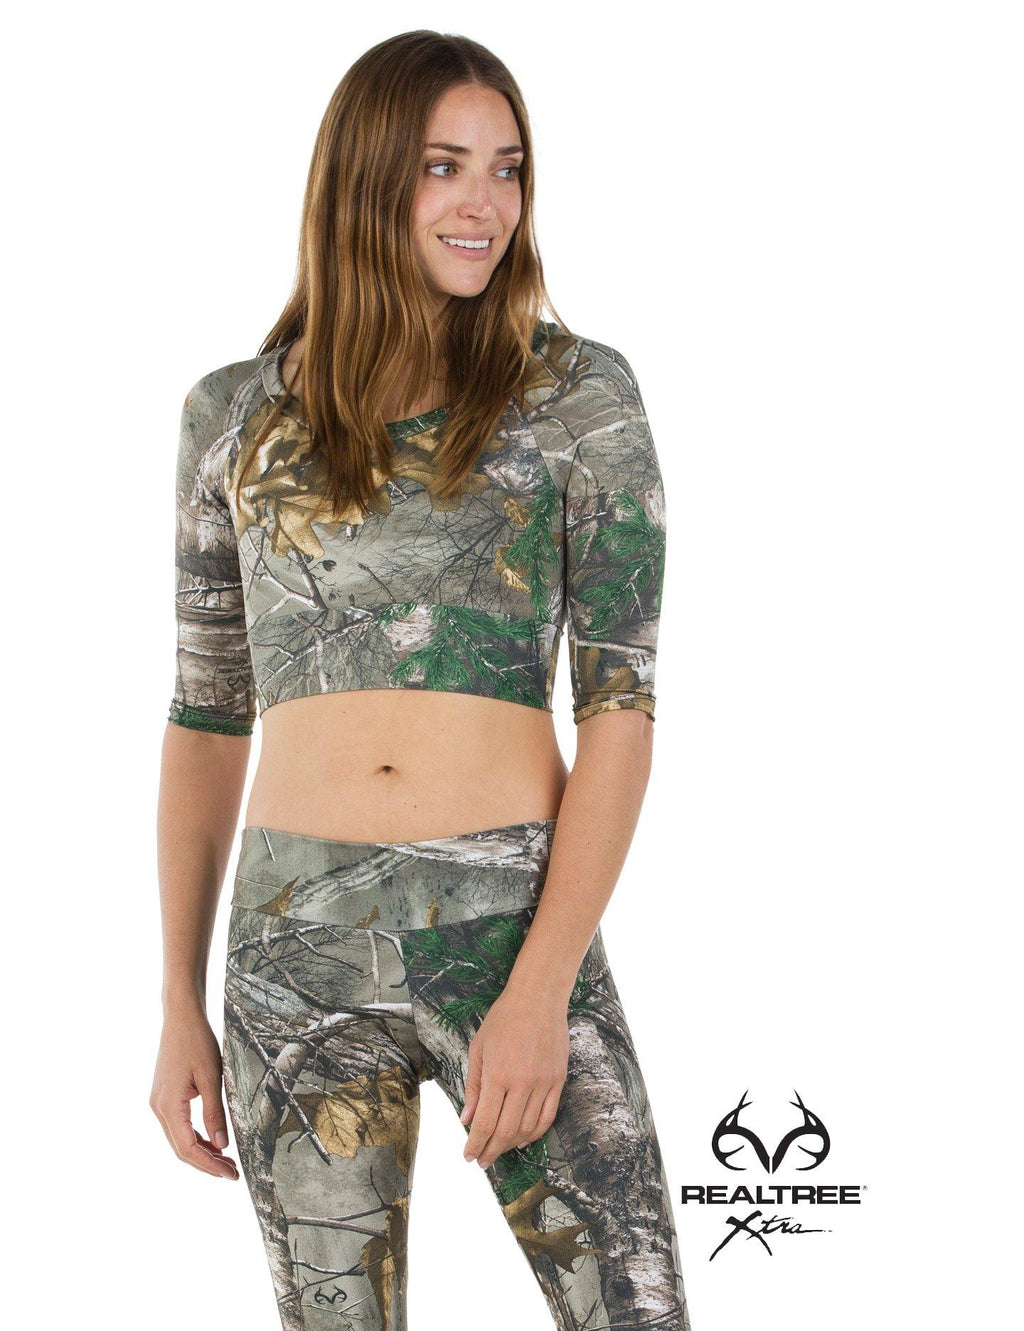 Apsara Cropped Top, Realtree Xtra